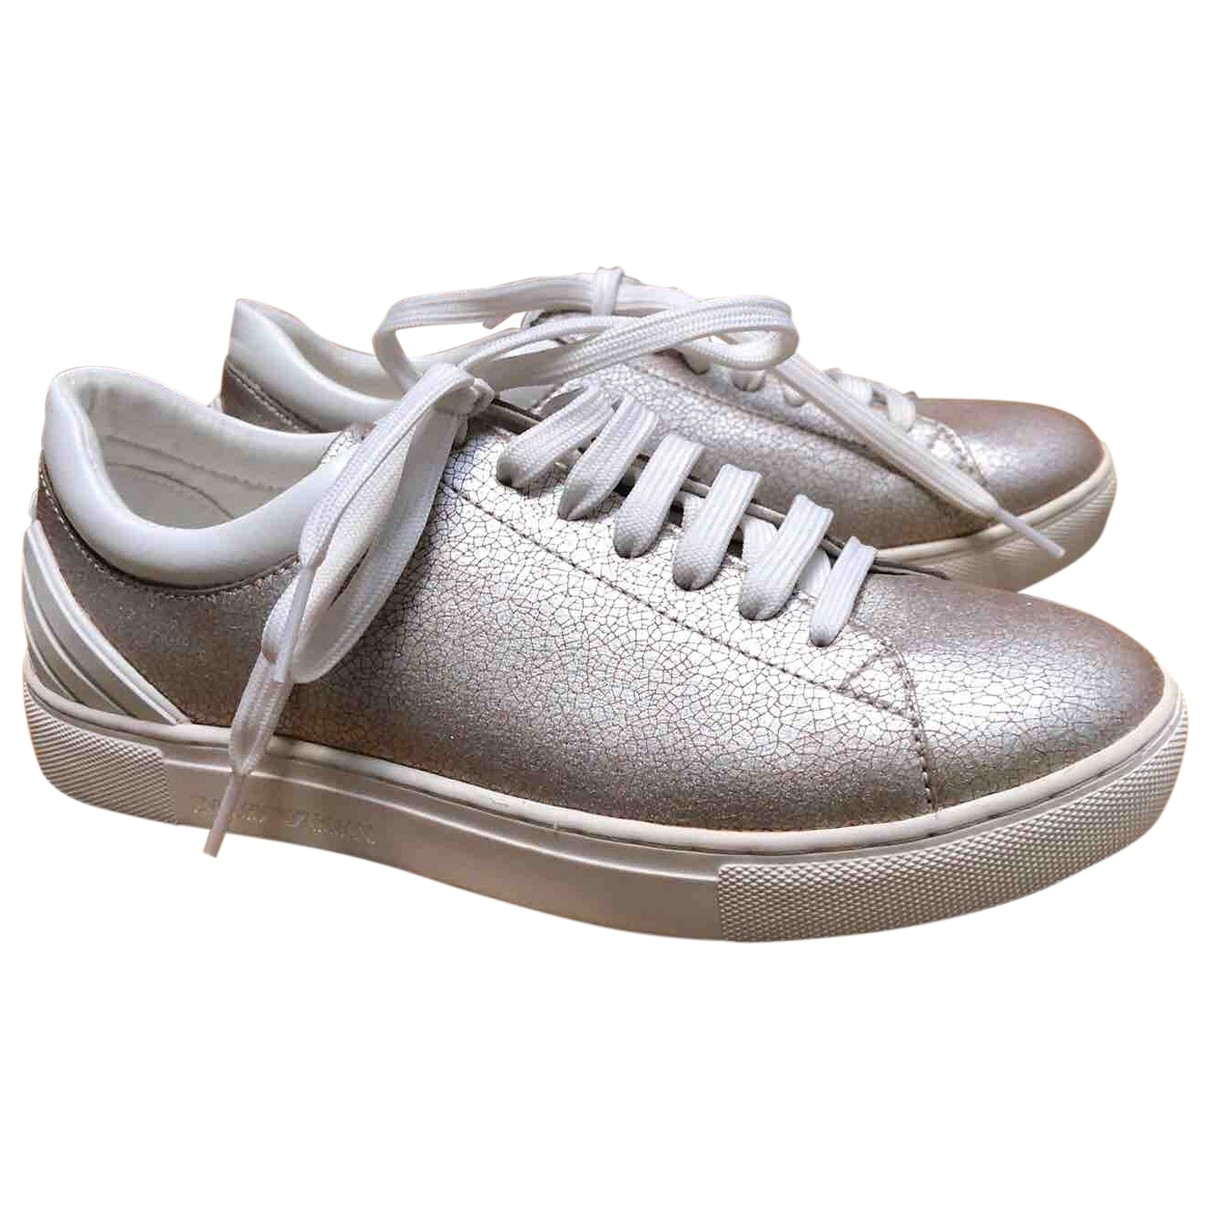 Emporio Armani \N Sneakers in  Silber Polyester